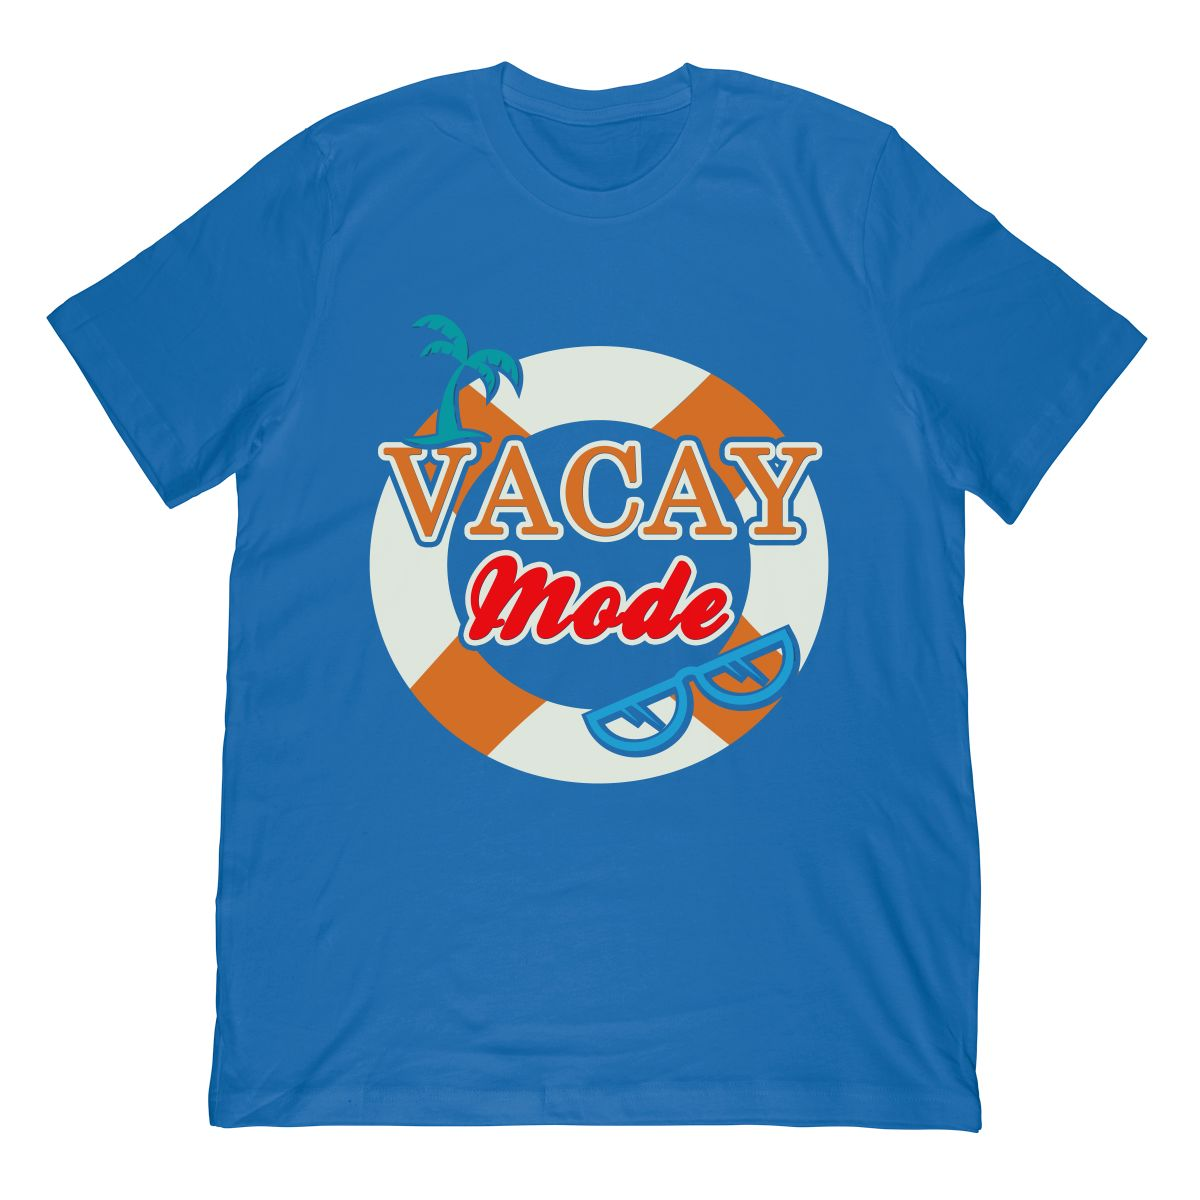 Cruise Vacation Vacay Mode Colorful T shirt